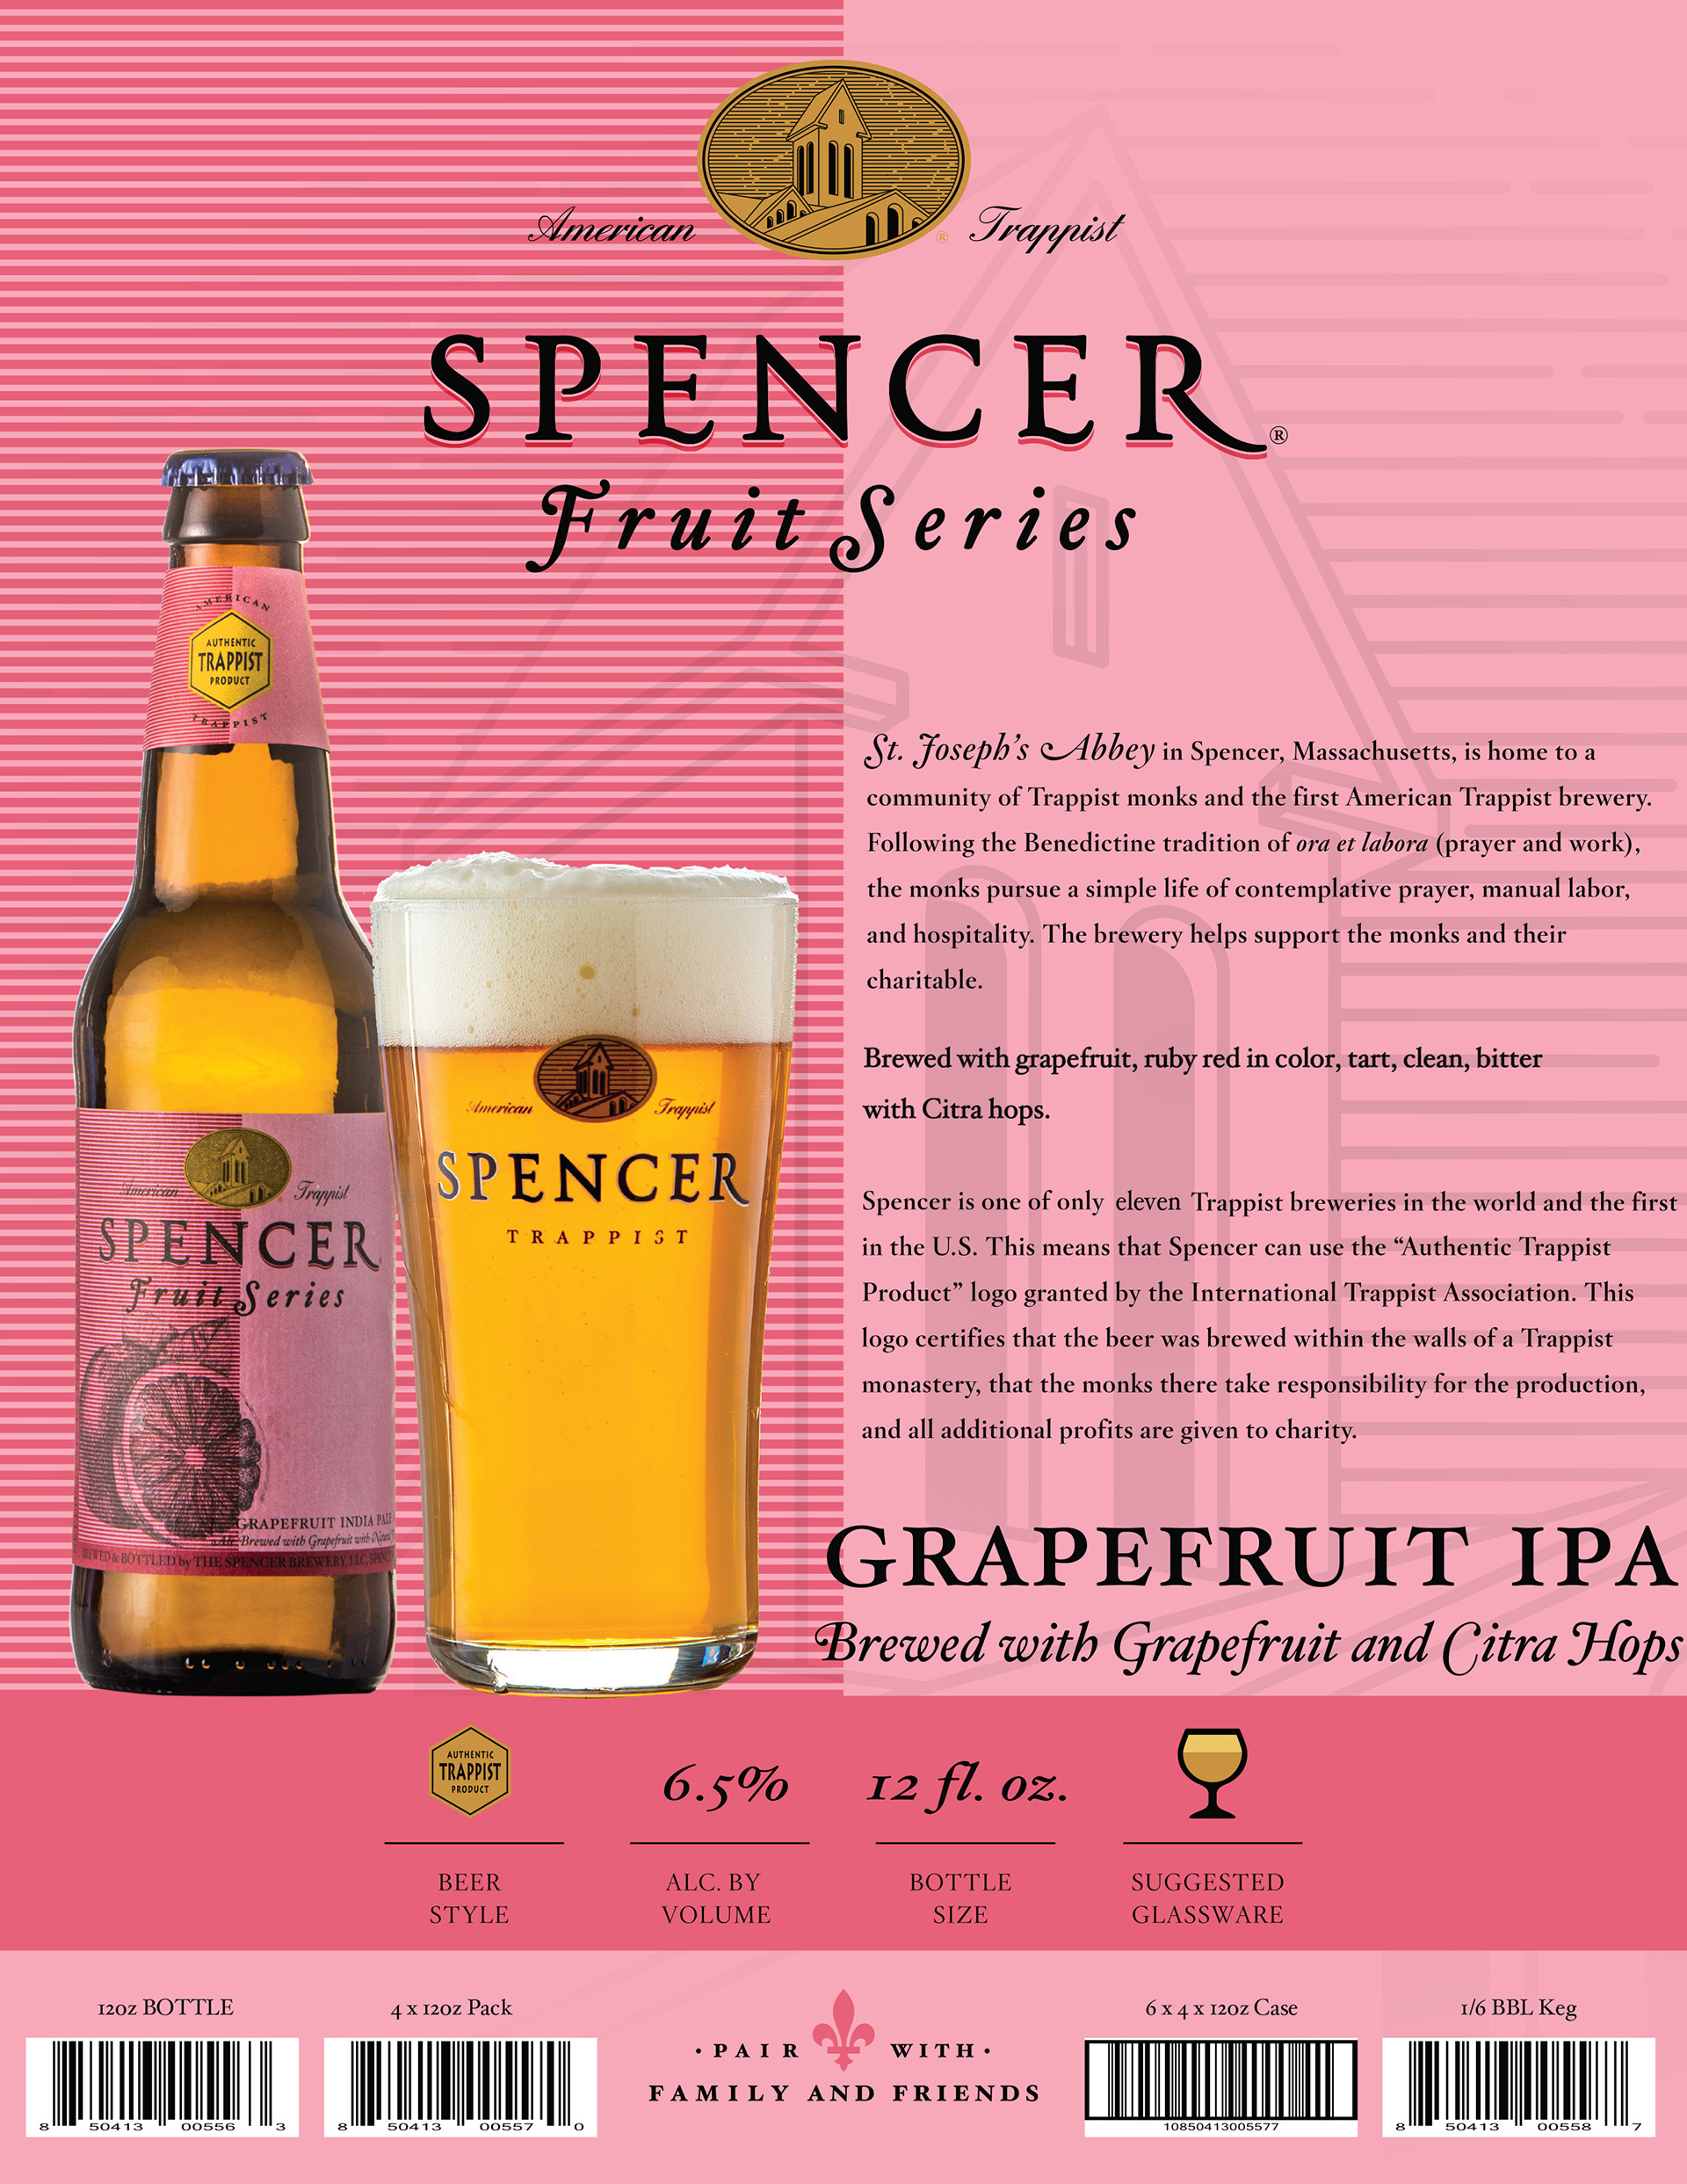 Grapefruit IPA Sell Sheet 1 1